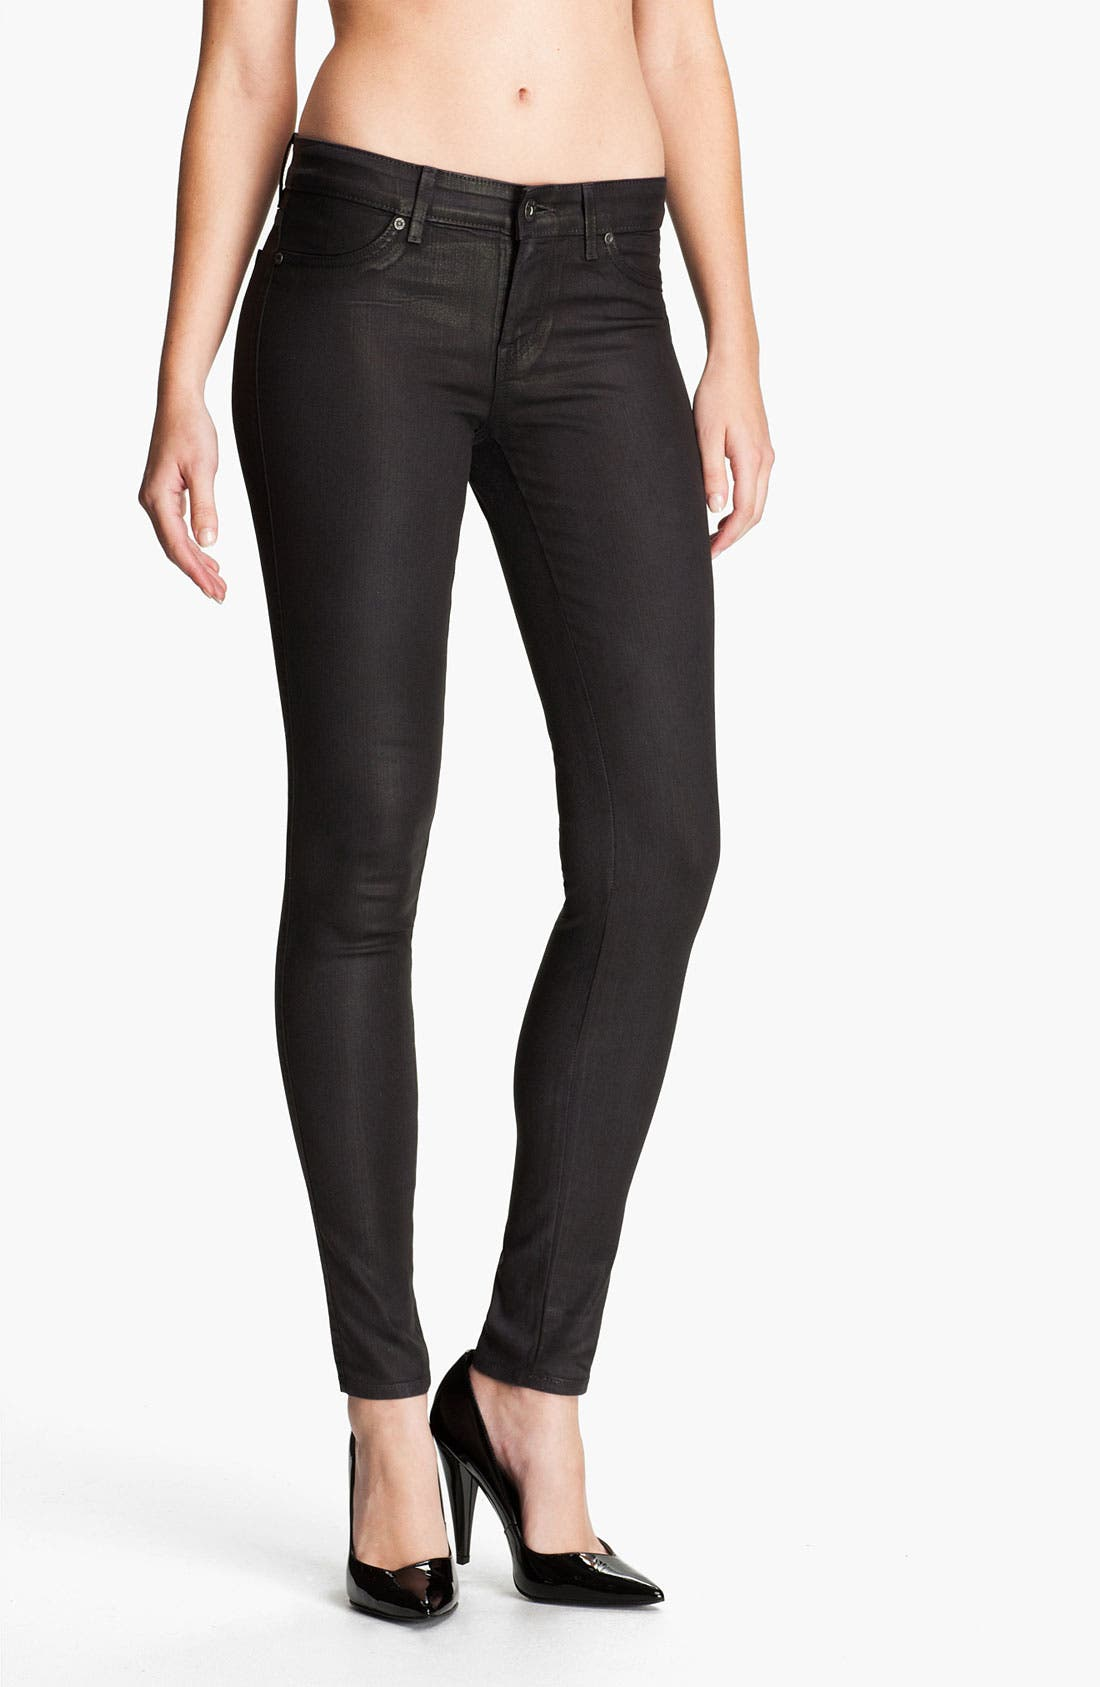 Alternate Image 1 Selected - Rich & Skinny 'Legacy Leather' Faux Leather Skinny Jeans (Owl)